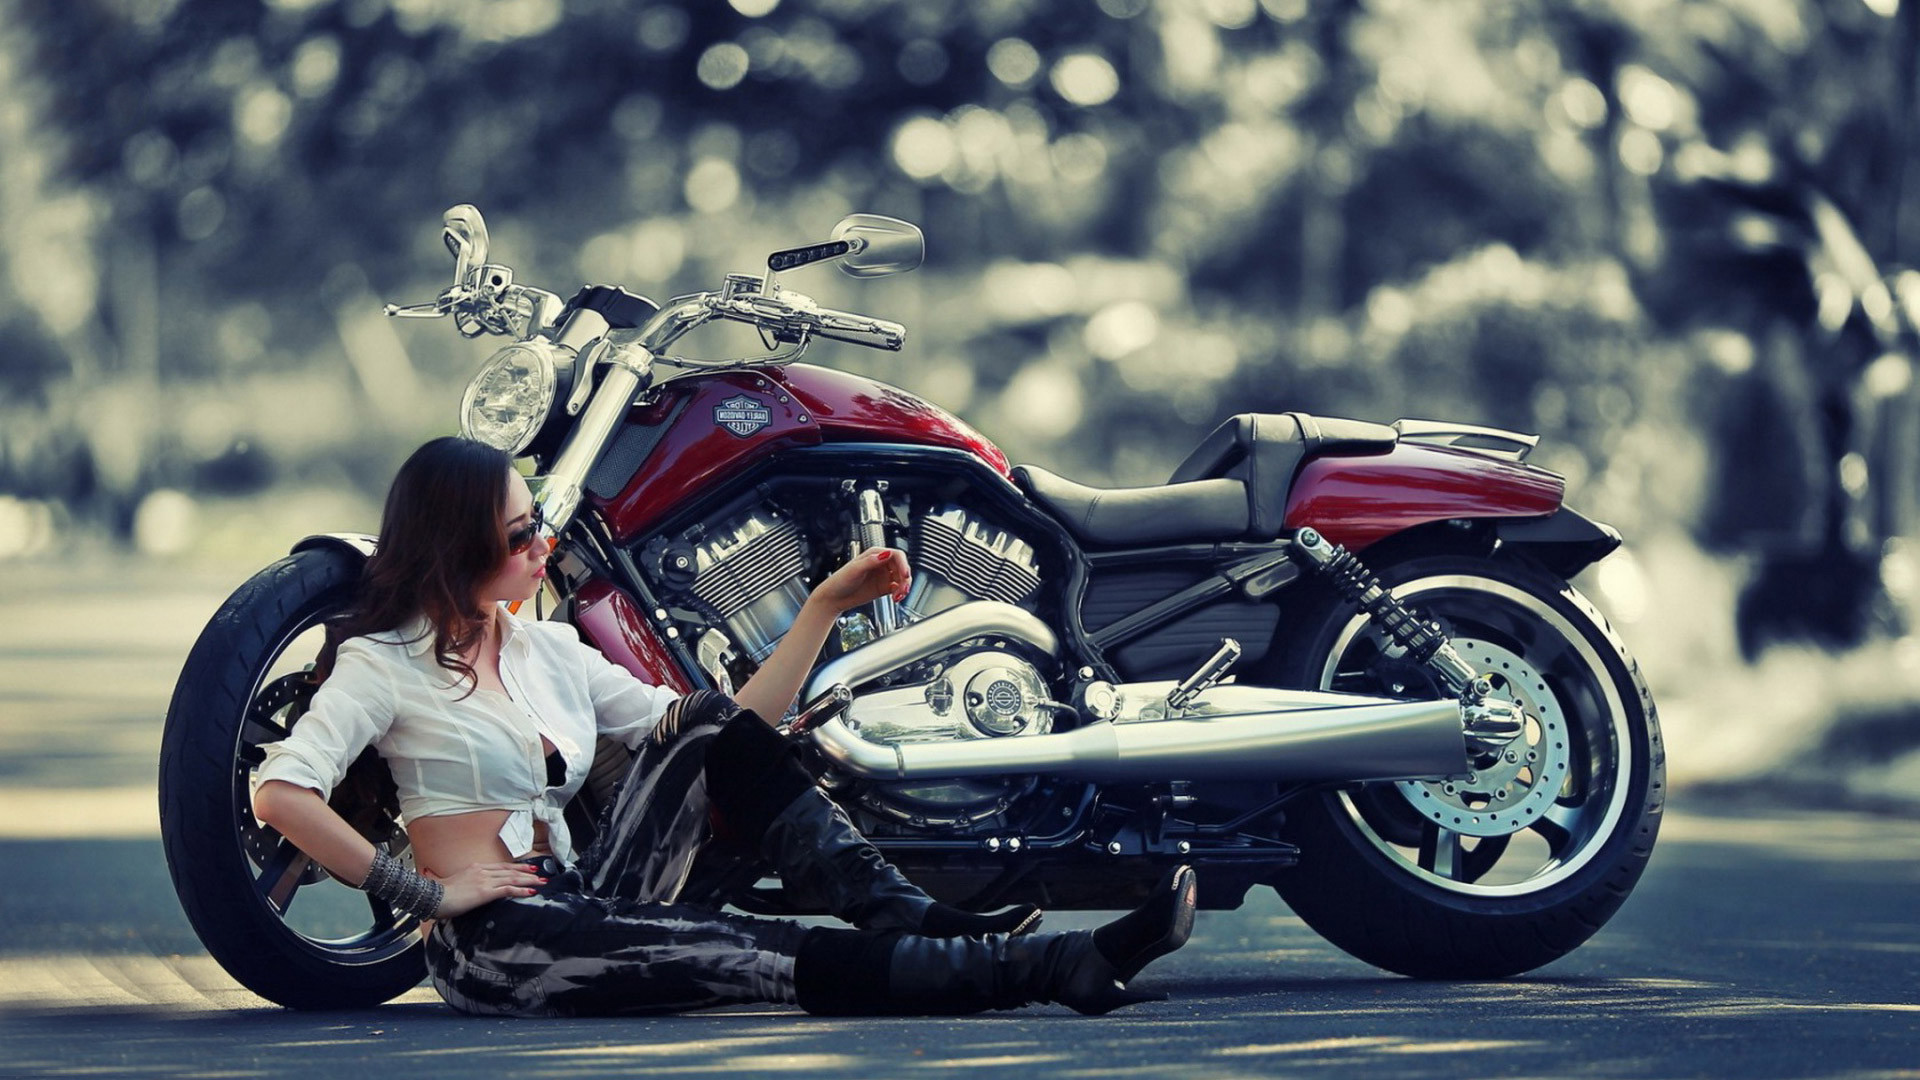 1920x1080 Harley Davidson Bikes Inspirational Harley Davidson Bike Hd Wallpapers This  Wallpaper